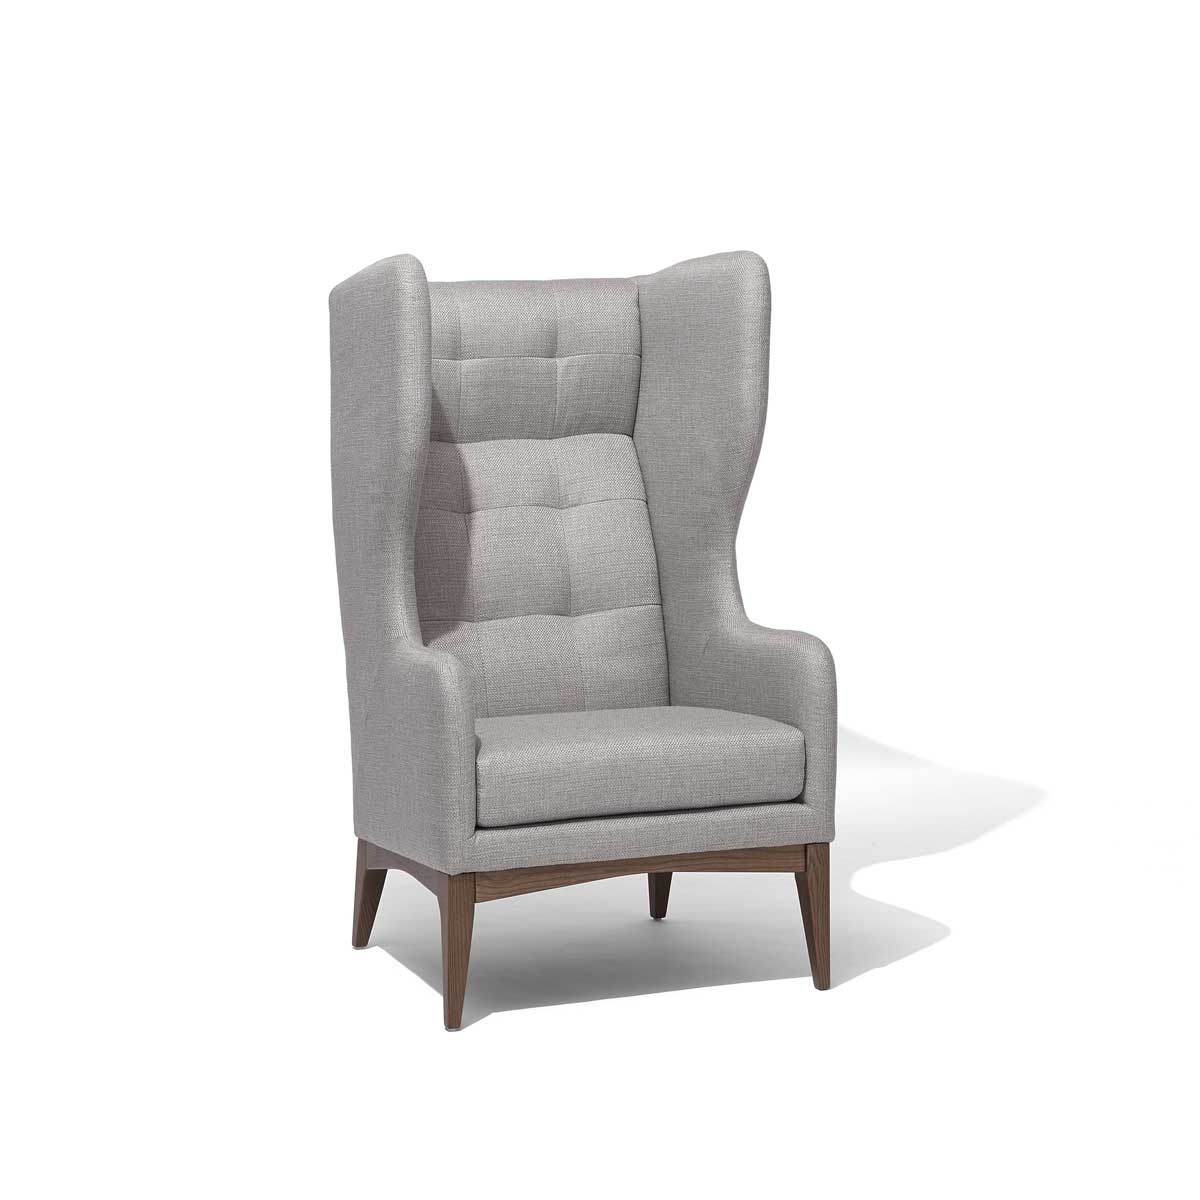 James Harrison XL Wing Chair